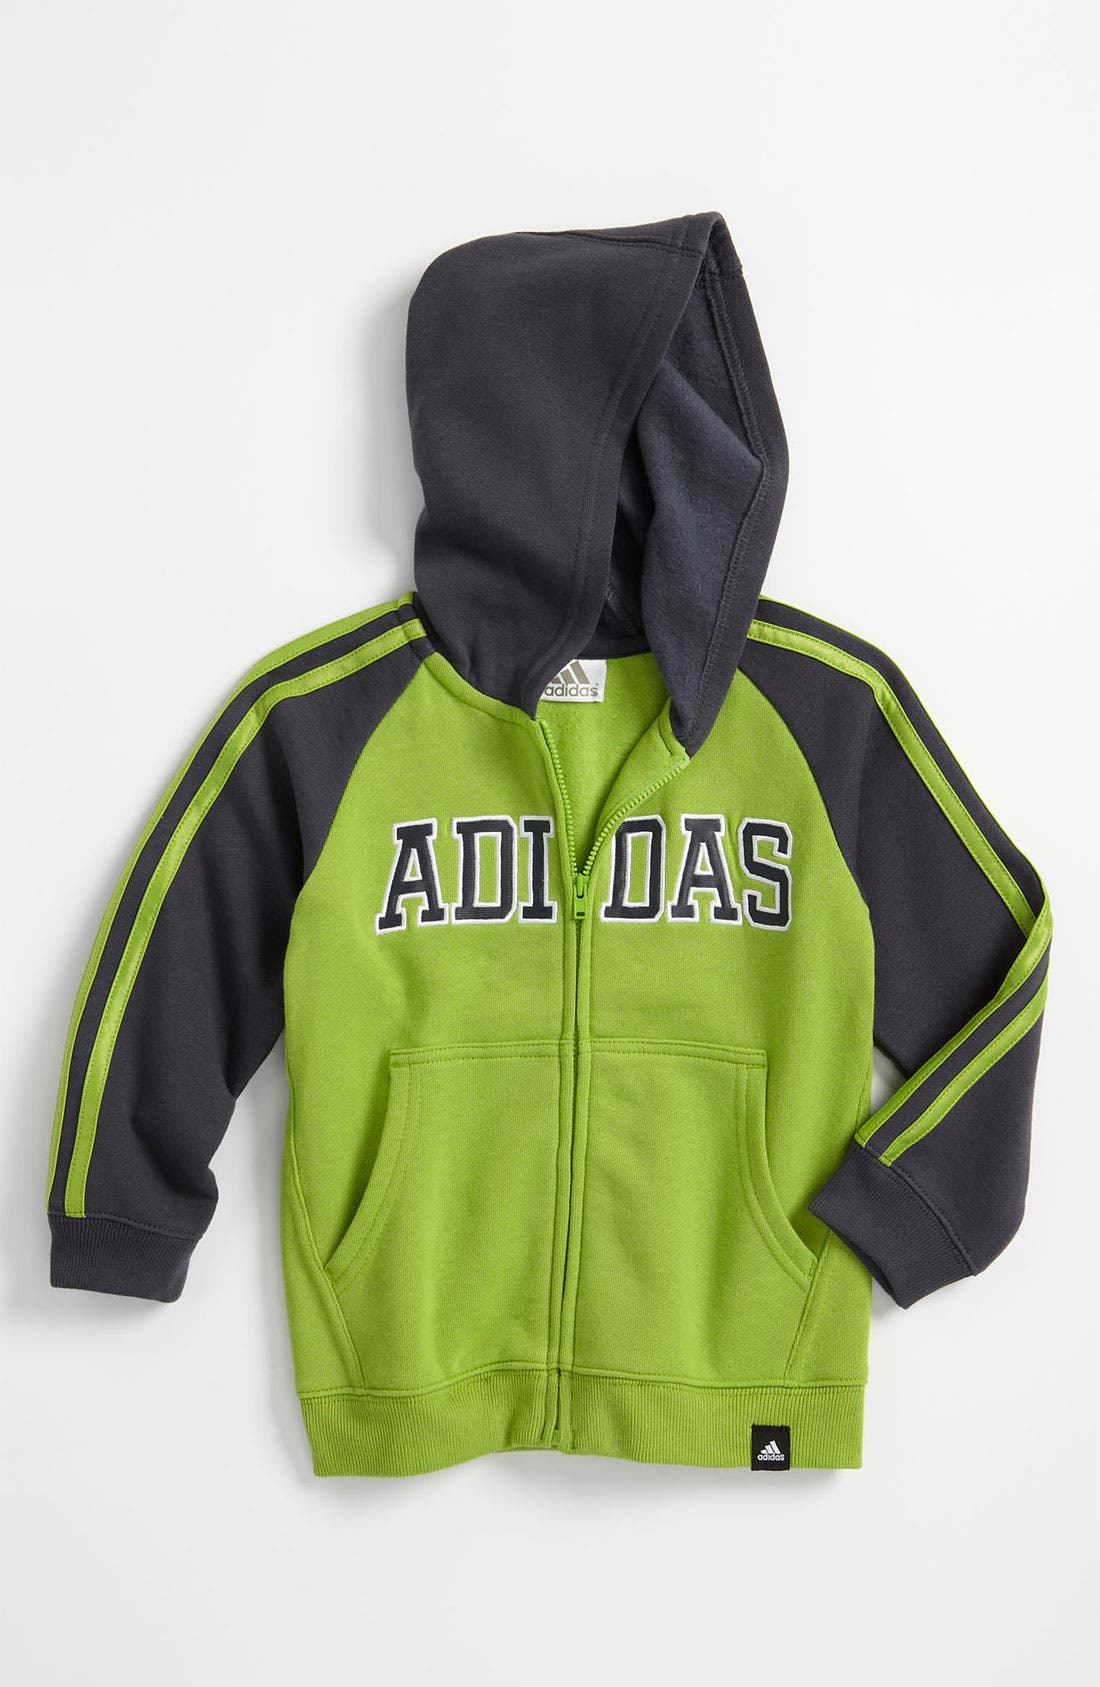 Main Image - adidas 'Warm Up' Jacket (Toddler)